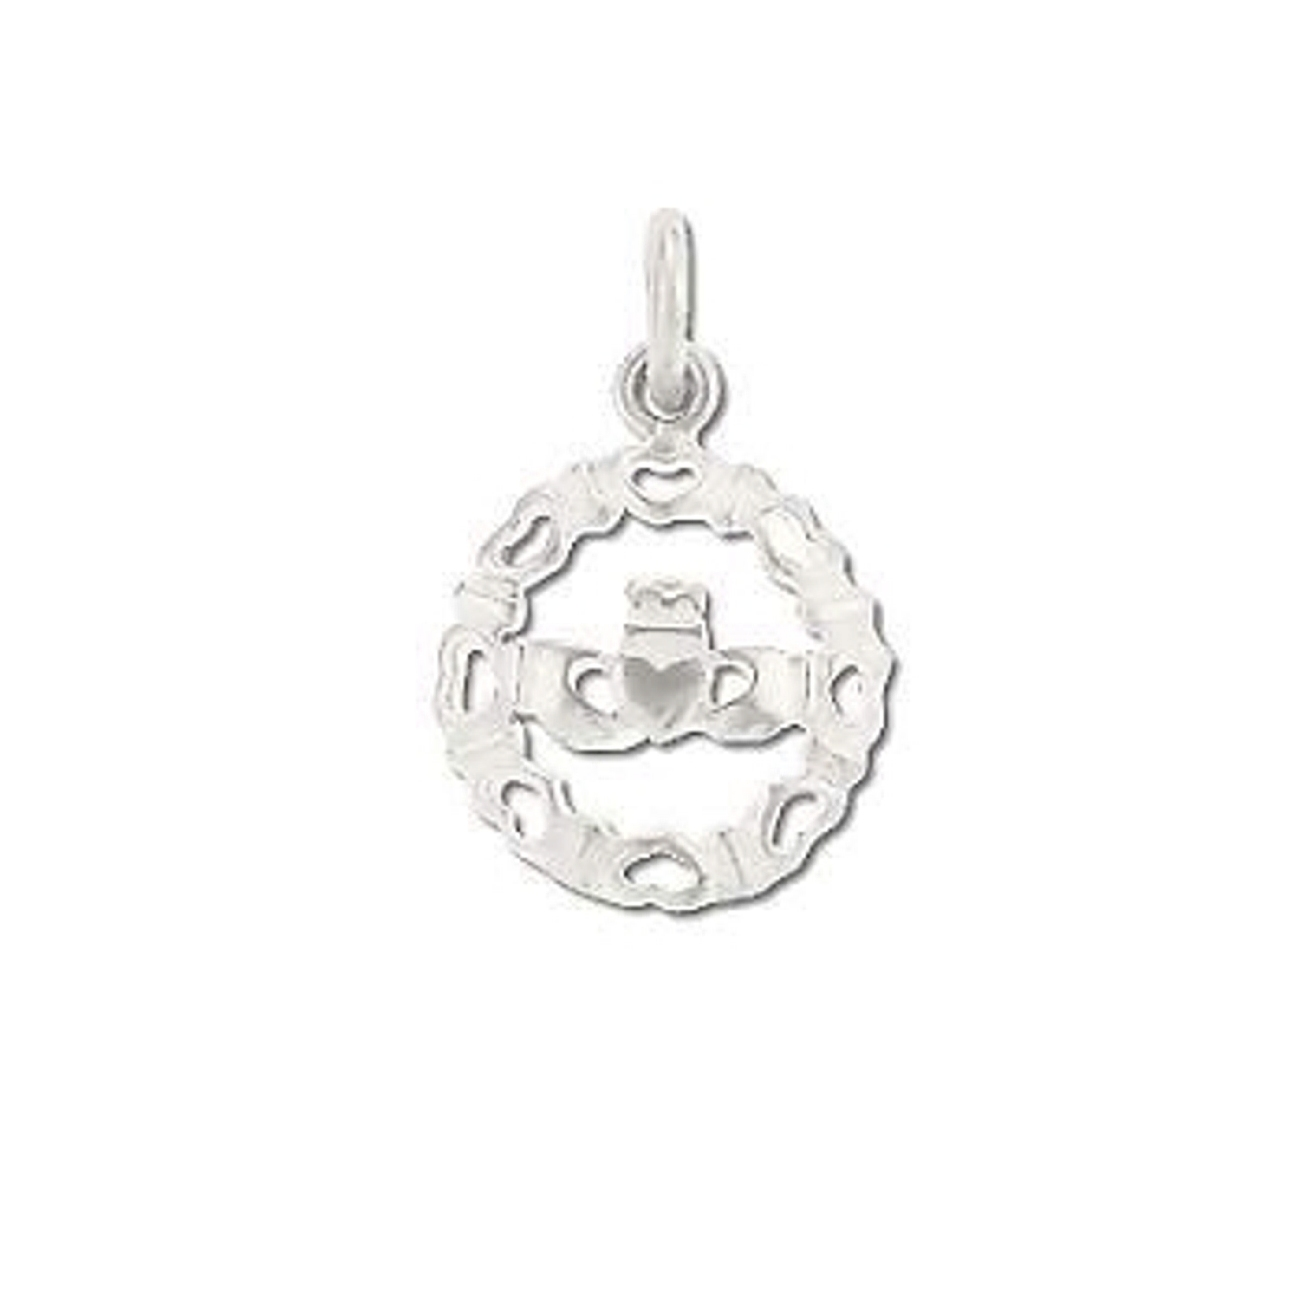 Curved Round Claddagh Surrounded By Hearts Charm